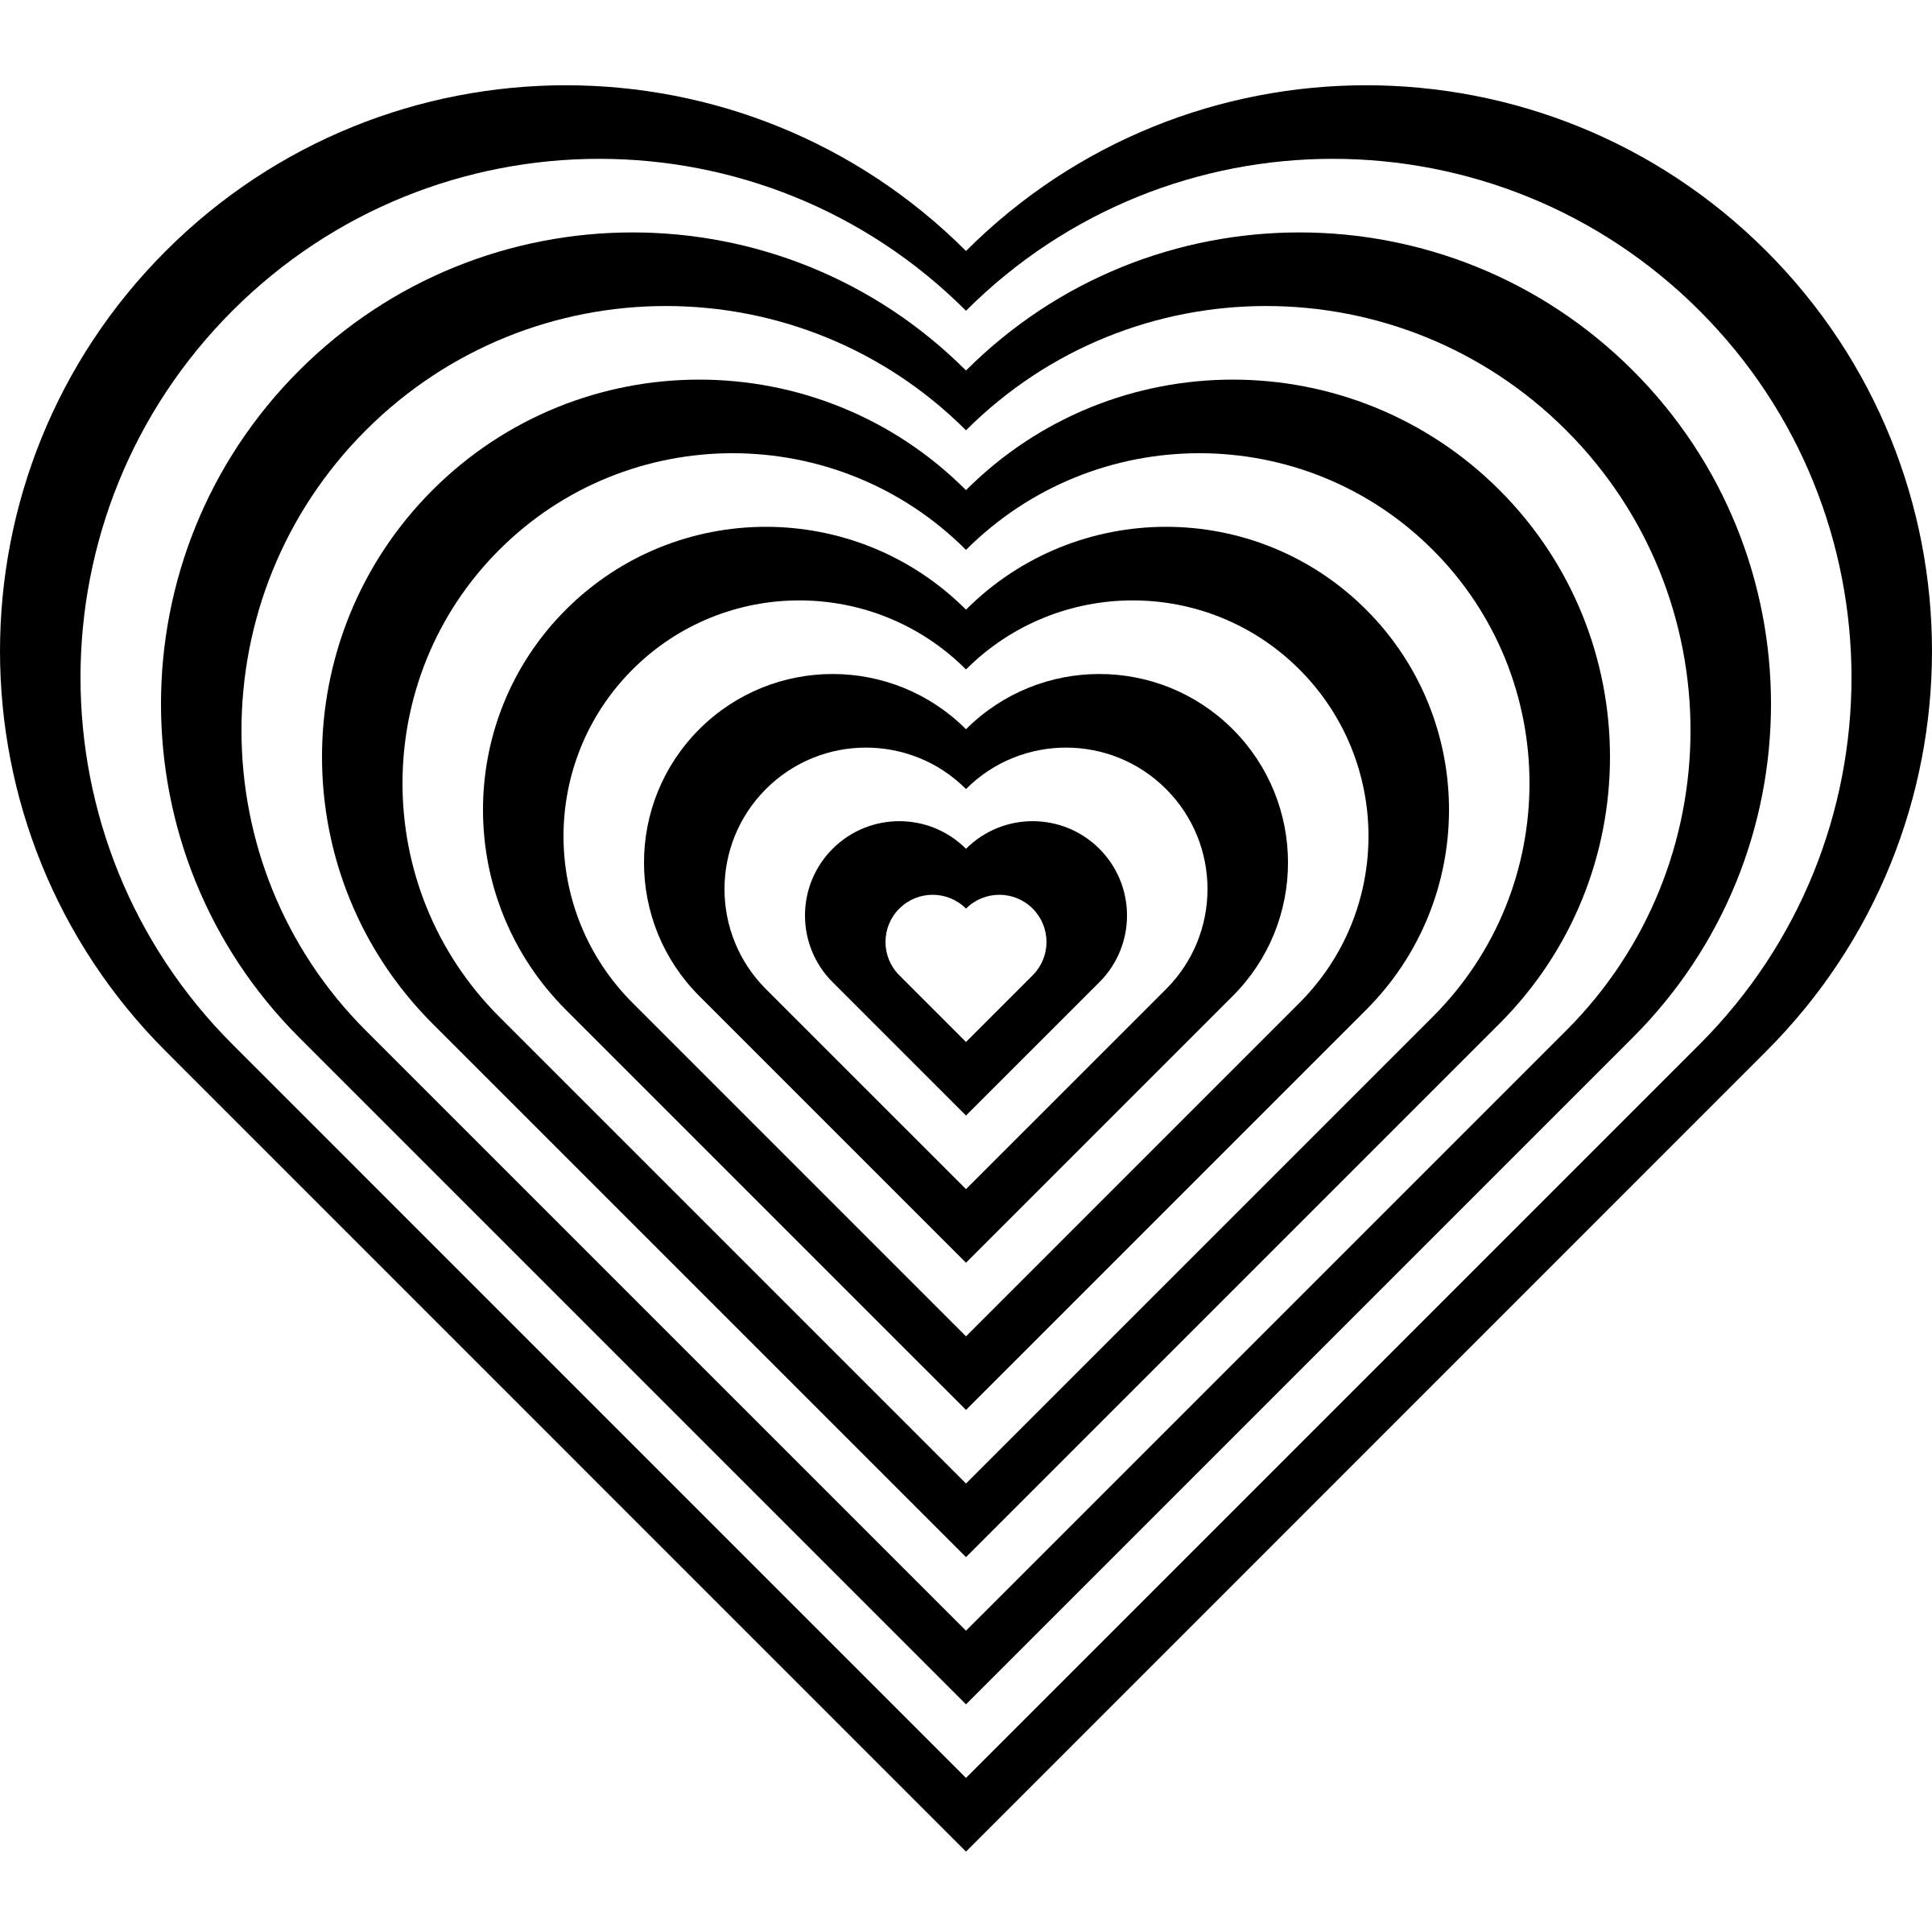 Clipart zebra logo. Heart pencil and in